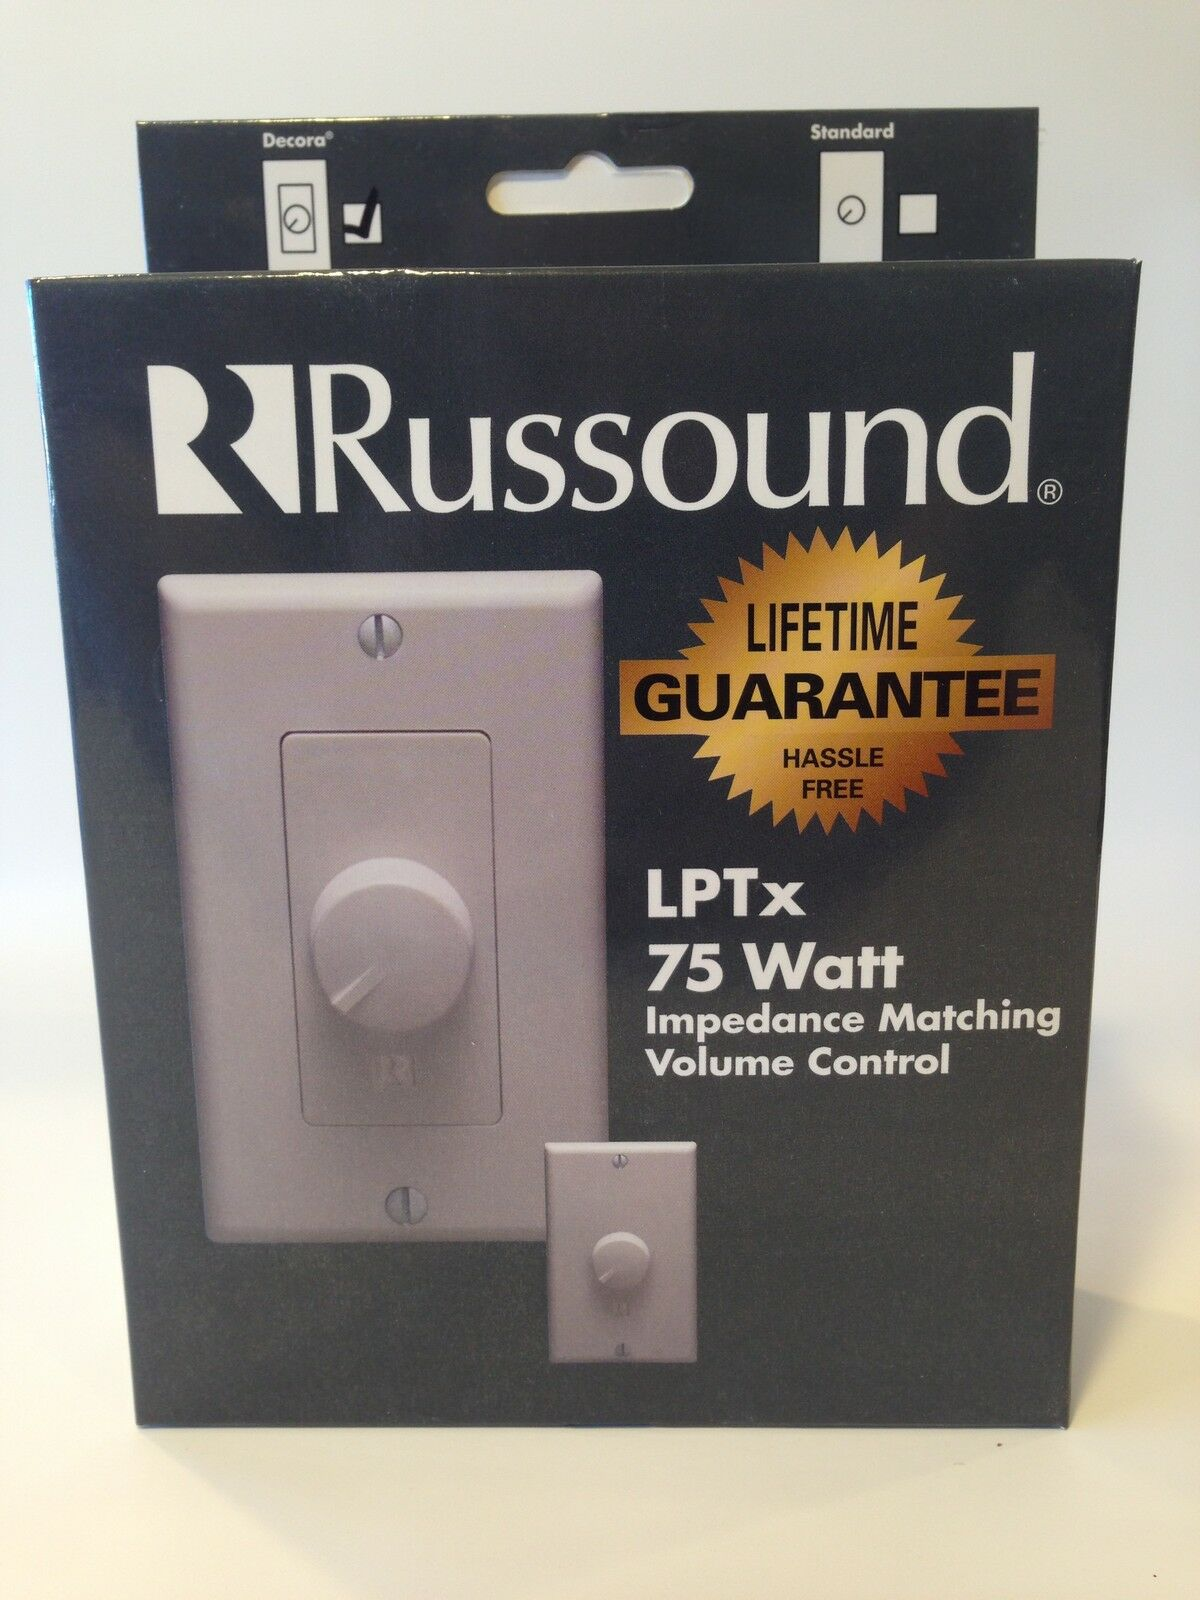 Russound Lptx 2d Ebay 262734332548 Volume Control 75 Watt Bone 6200 113512